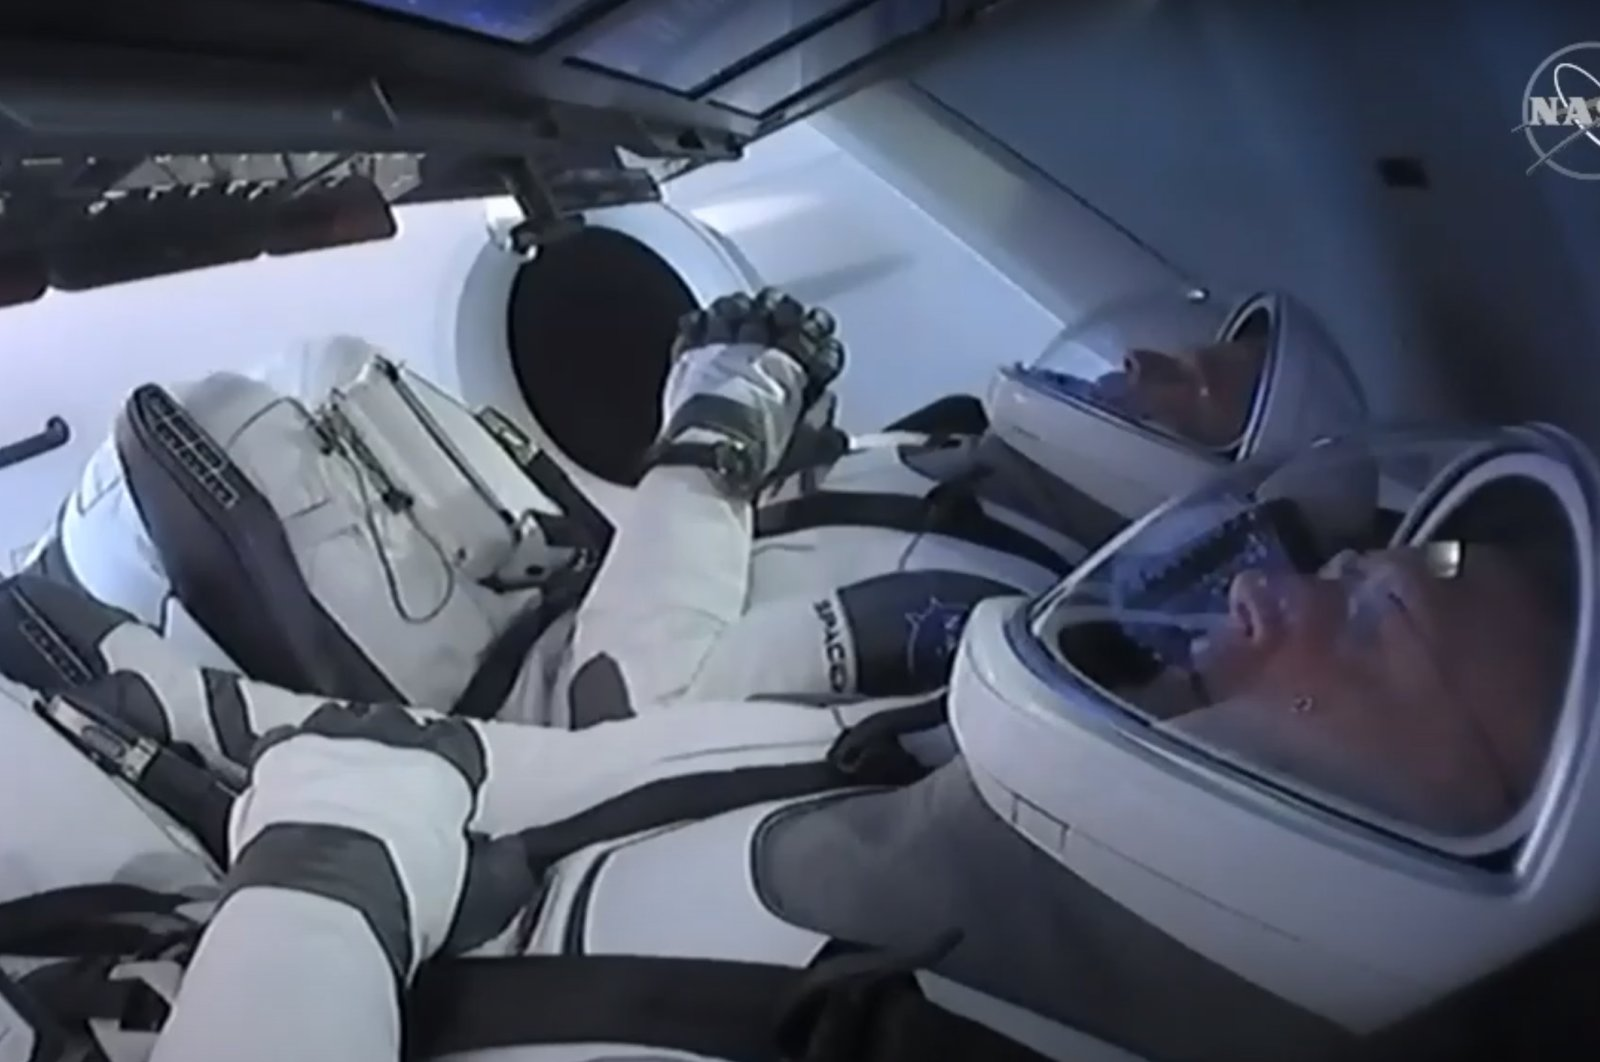 This still image taken from NASA TV, shows the SpaceX Crew Dragon capsule, with astronauts Bob Behnken (front) and Doug Hurley, at Launch Complex 39A in Kennedy Space Center in Florida on May 27, 2020. (AFP Photo/NASA TV)